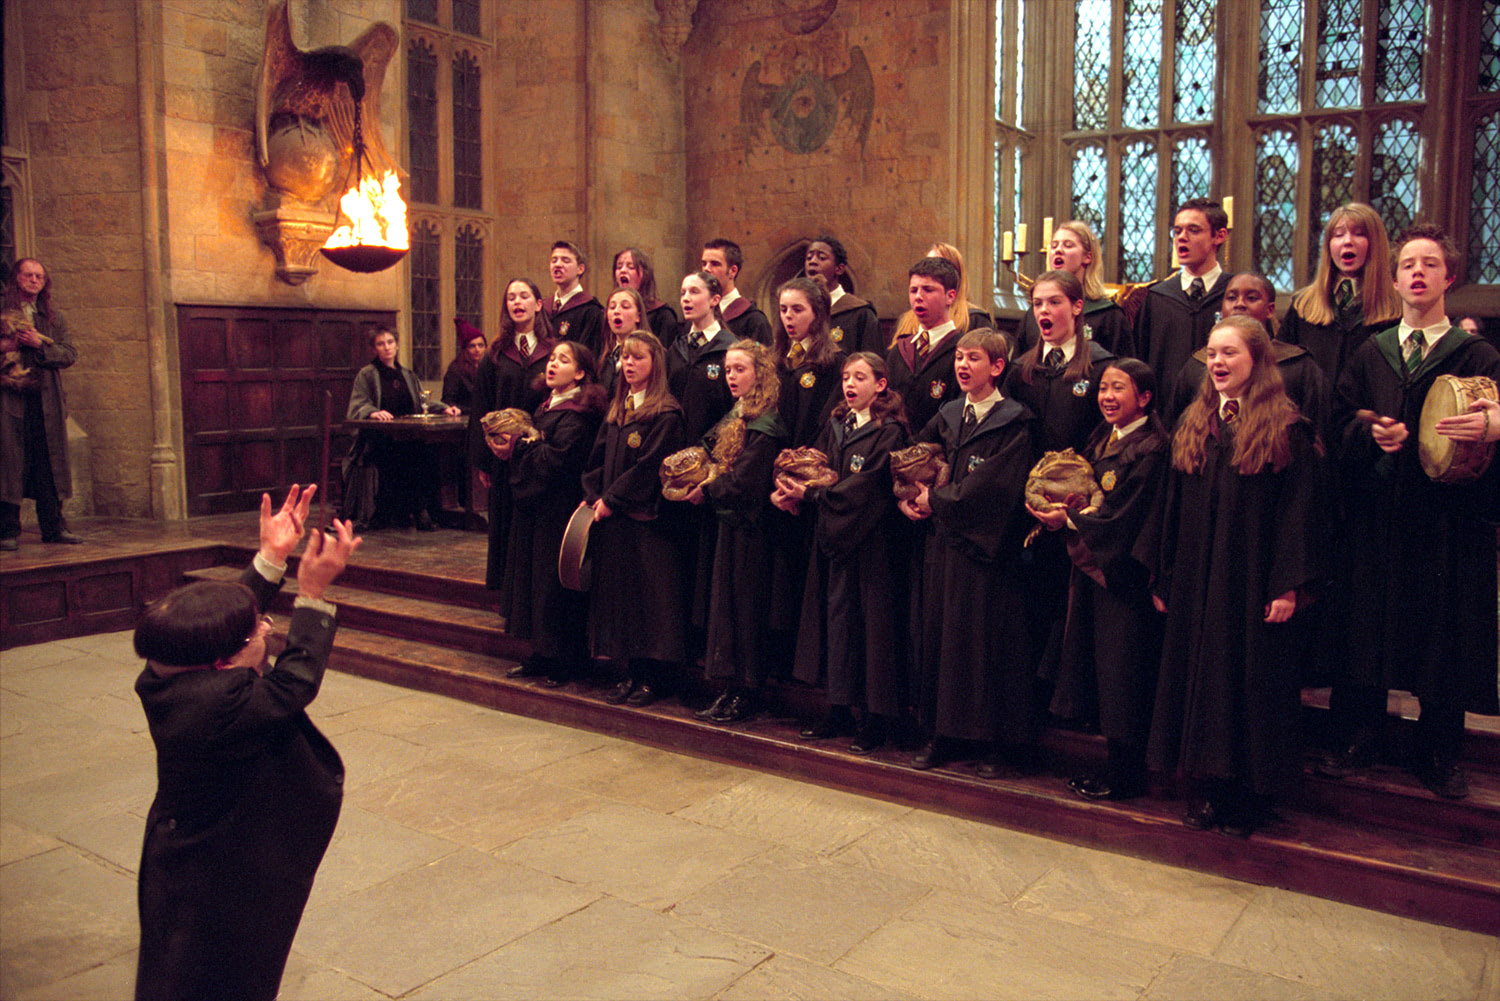 Hogwarts choir singing Double Trouble